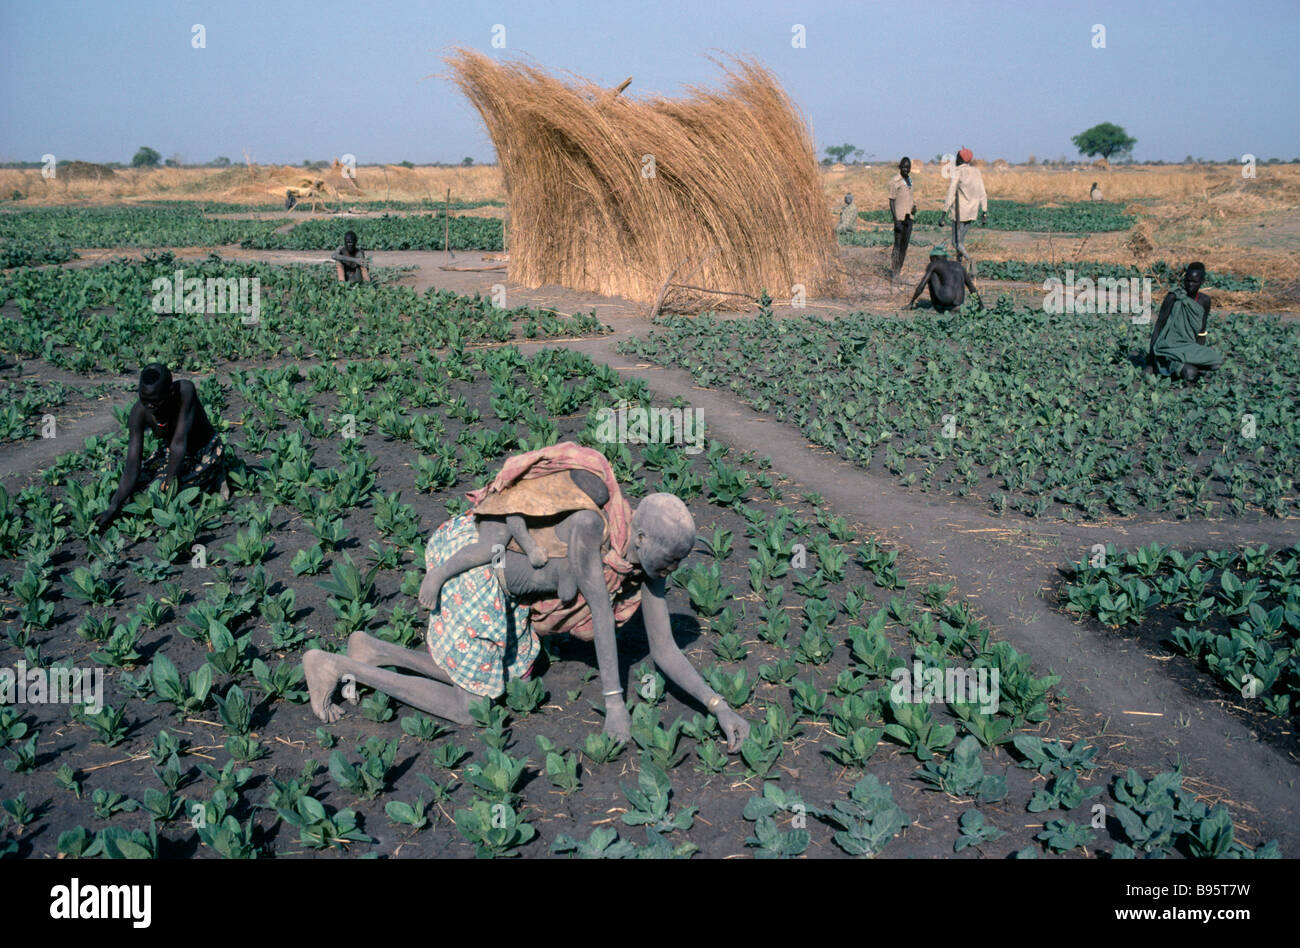 SUDAN Agriculture Farming Dinka tending tobacco crop woman carrying child on her back in foreground. - Stock Image